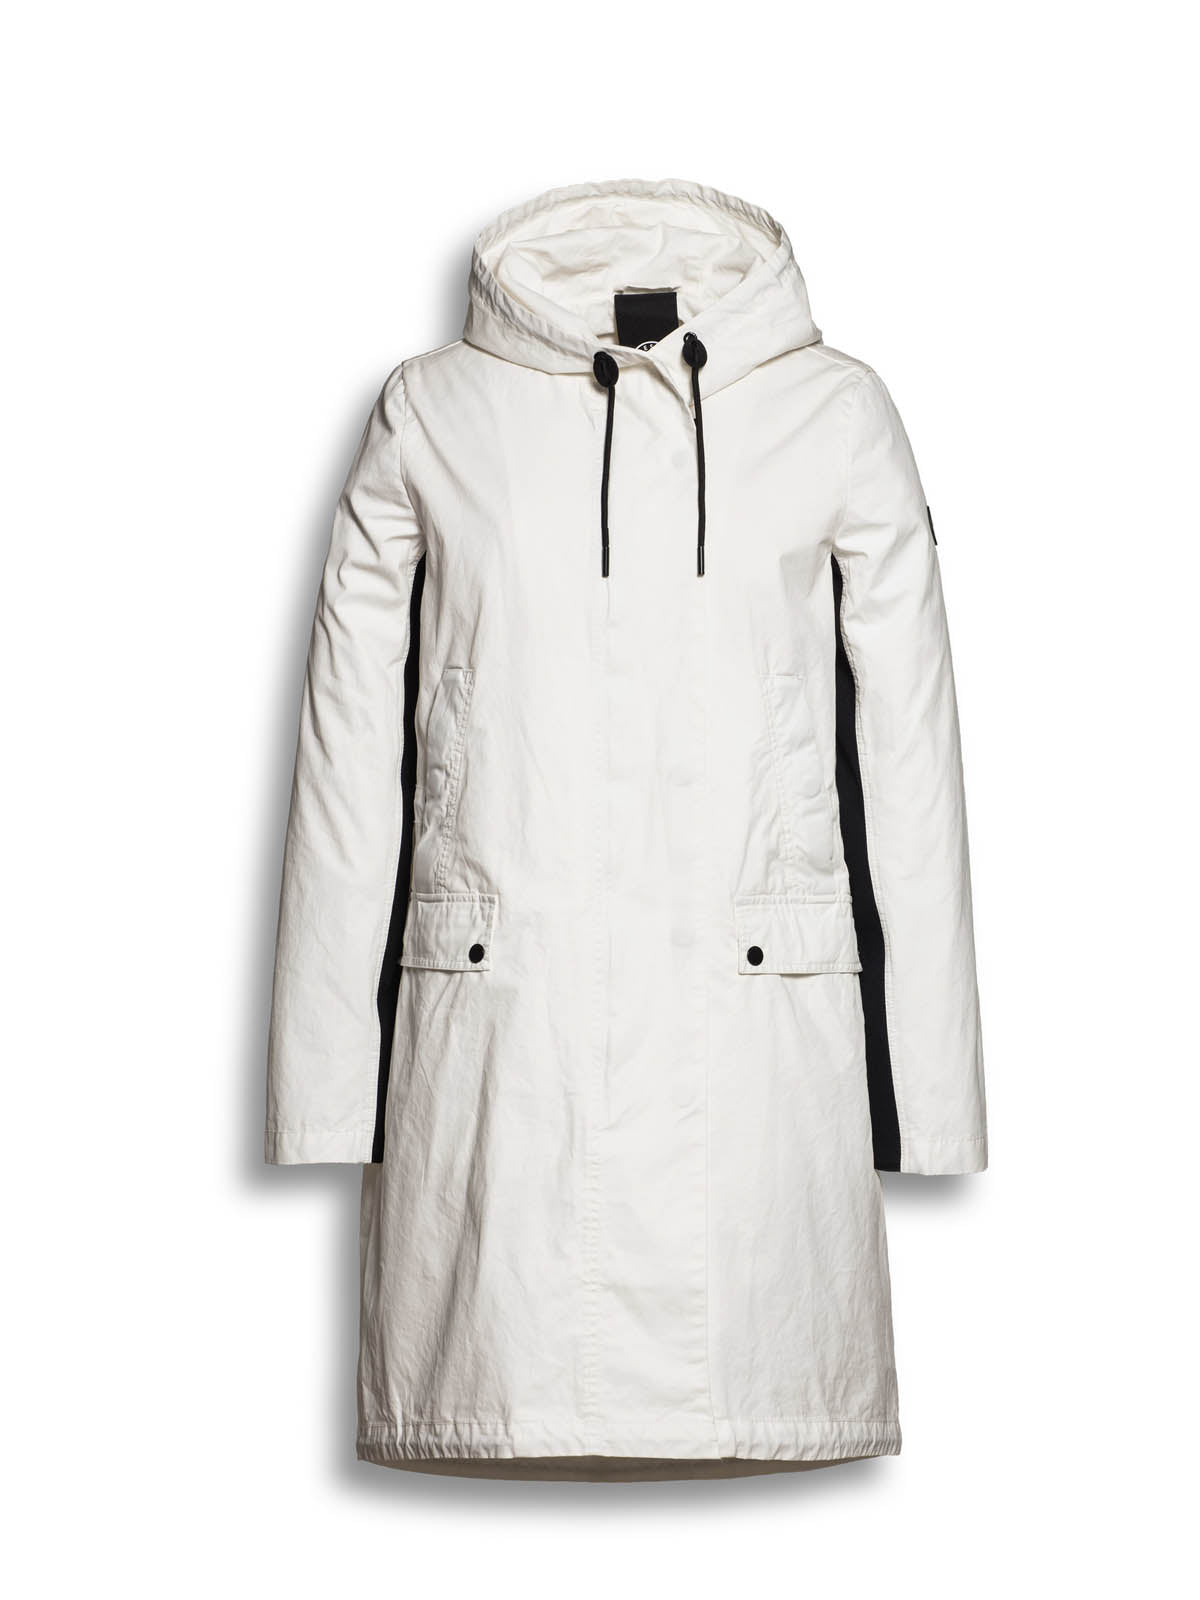 Reset Parka Coat in White, Coats, Reset, Blue Women - Blue Women's Clothing